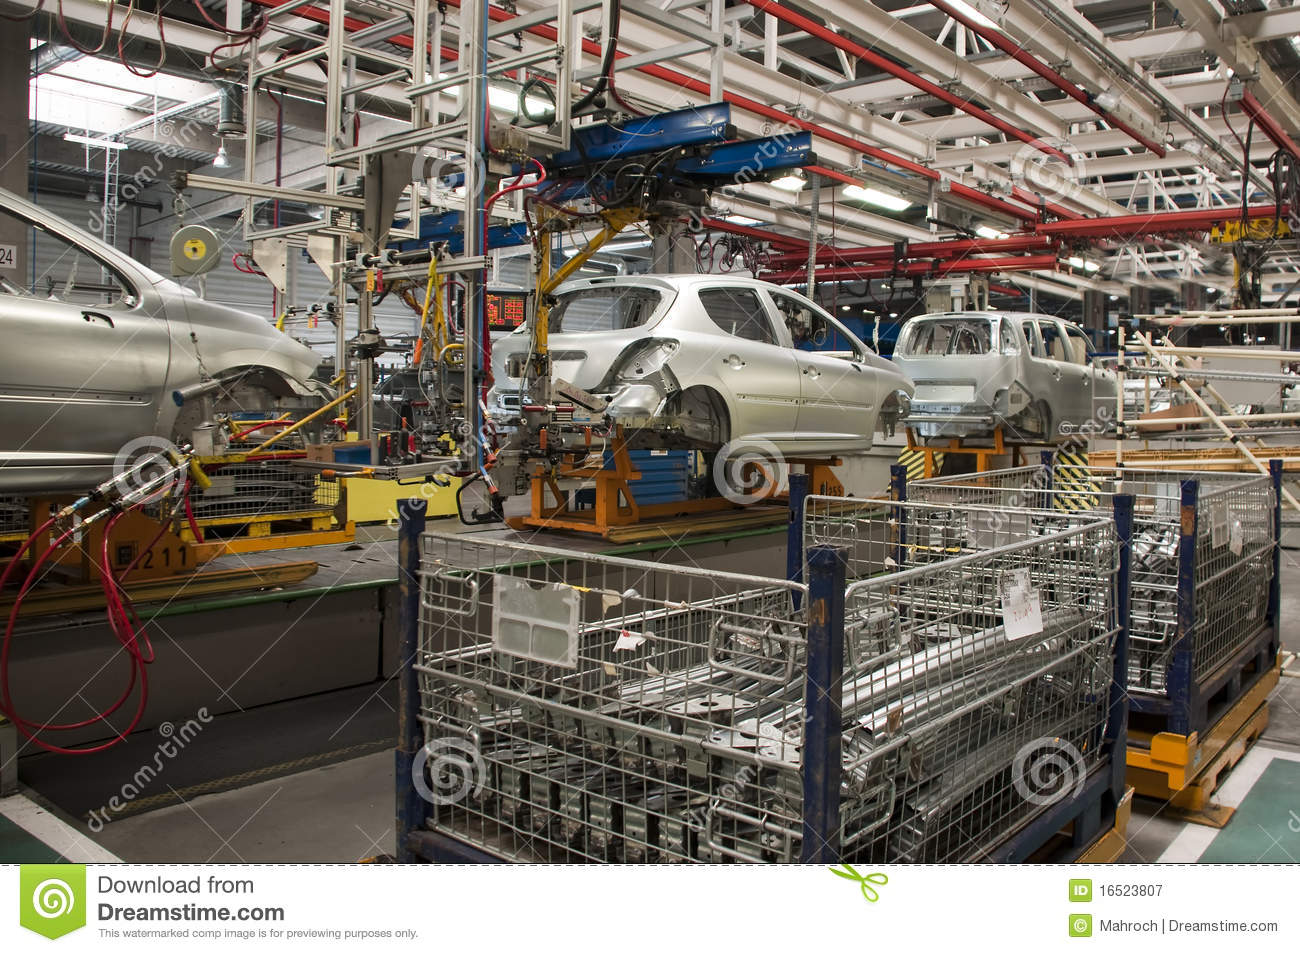 automotive-industry-manufacture-16523807.jpg